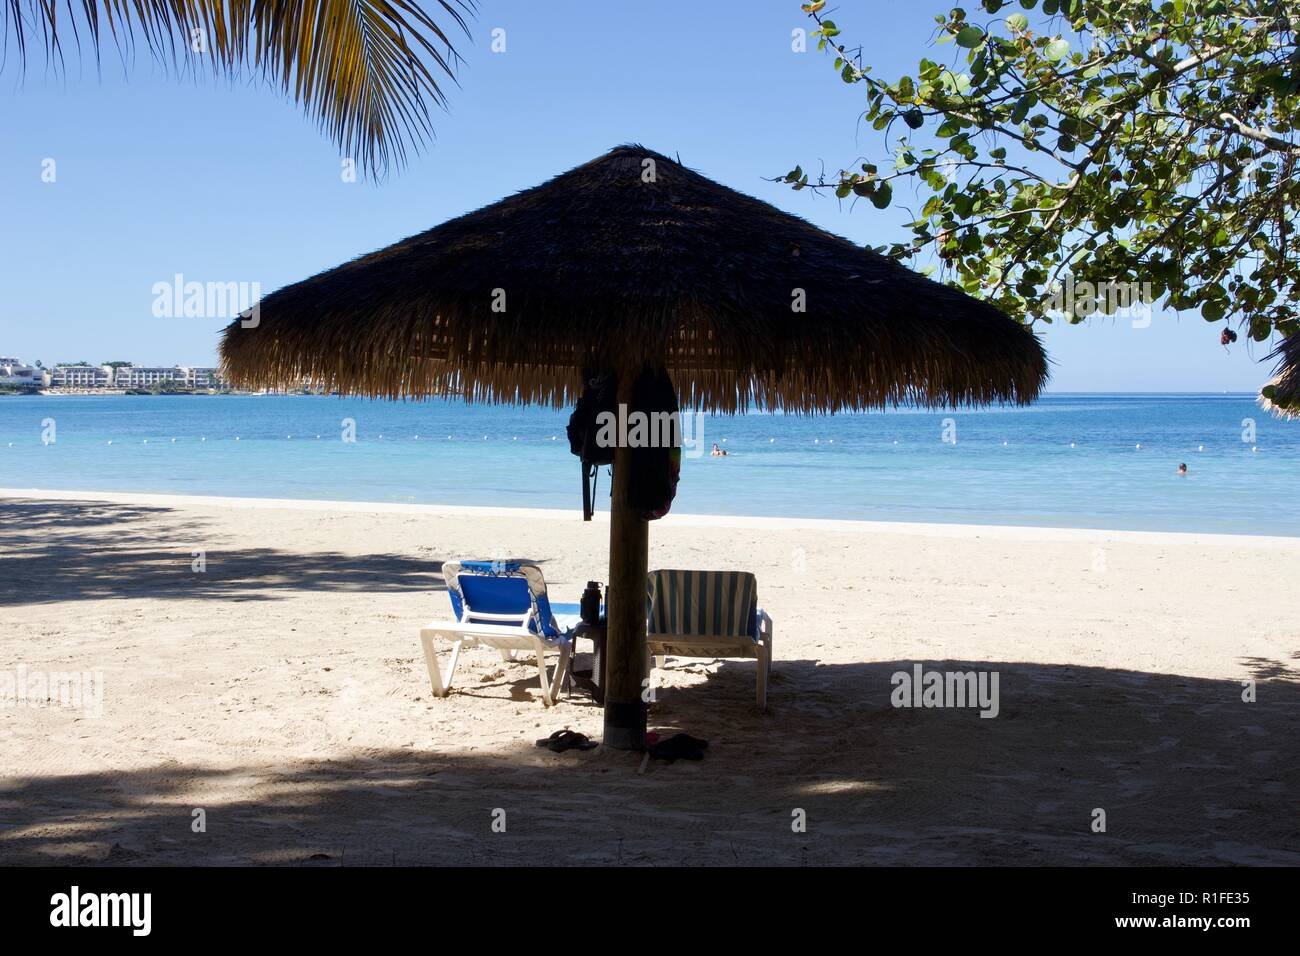 Beach shade provided by a thatched straw umbrella - Stock Image